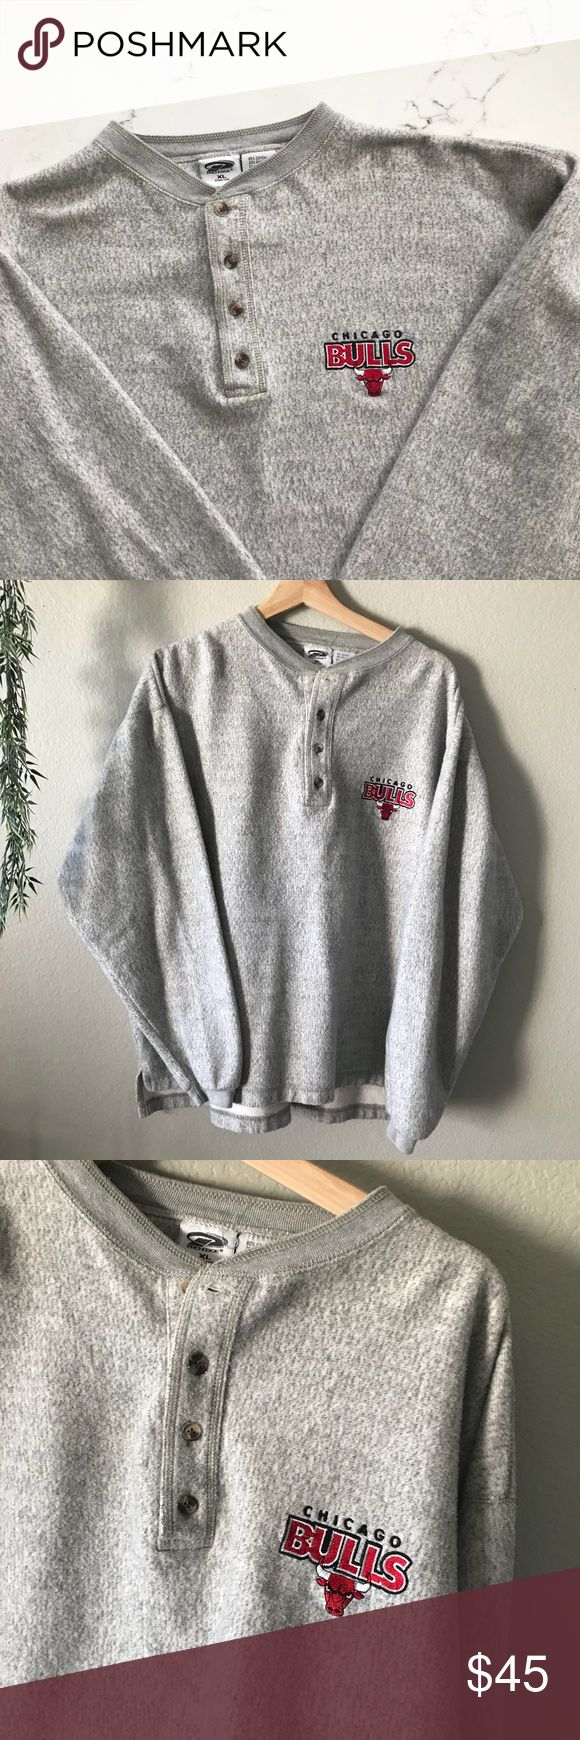 Vintage Chicago Bulls Sweatshirt Vintage NBA Chicago Bulls Pro Edge Sweatshirt with buttons. Vtg 90s from the Bulls Championship Era. Adult XL. Circa 1998. National Basketball Association. Vintage Shirts Sweatshirts & Hoodies